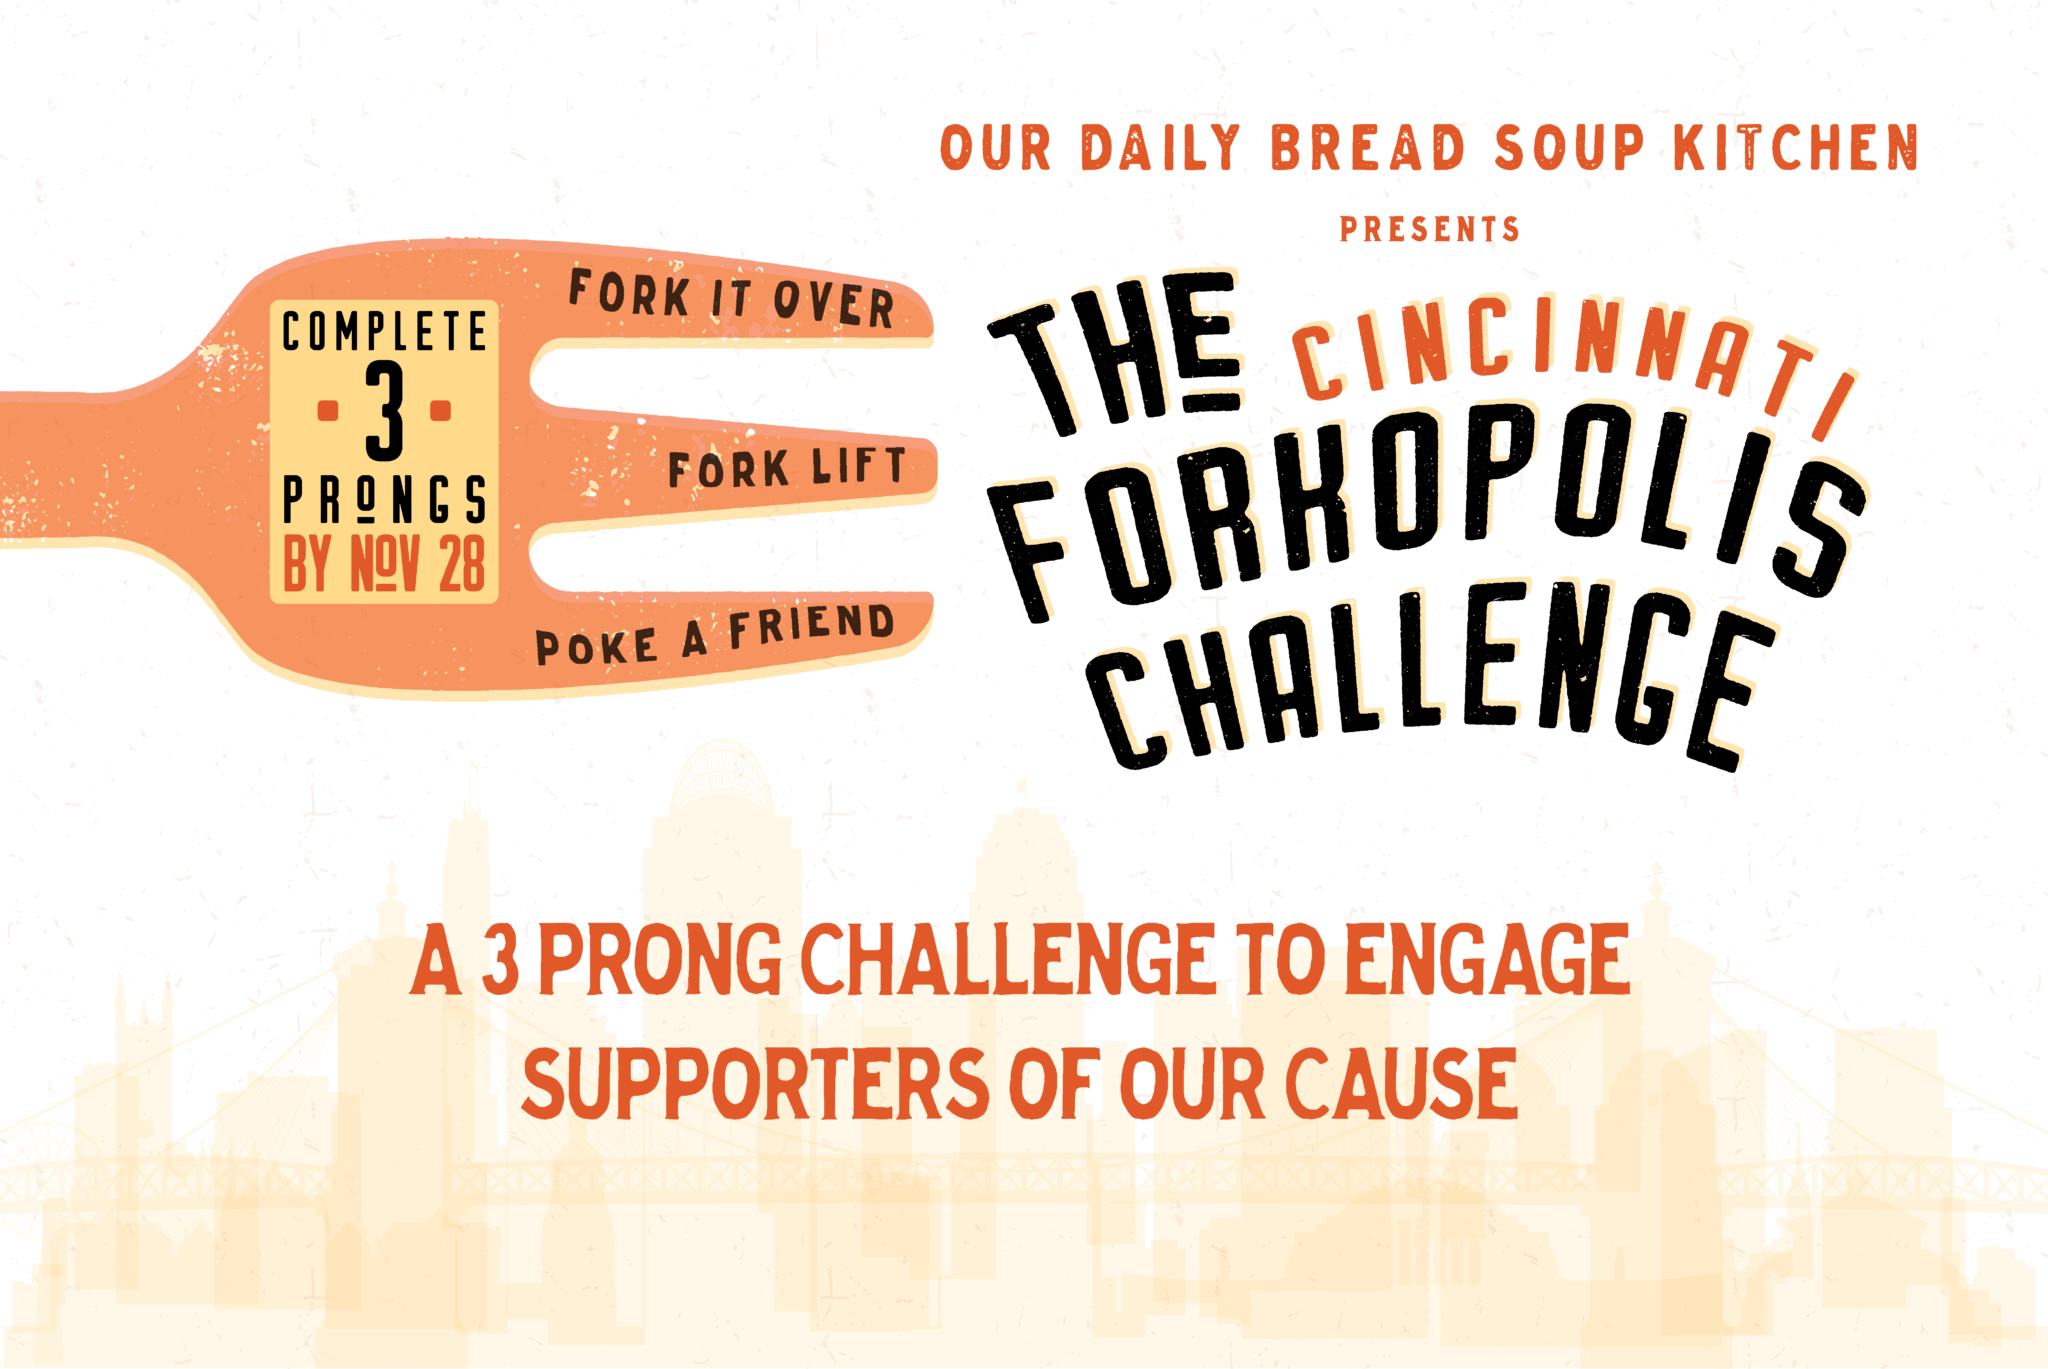 Forkopolis2017 Our Daily Bread Soup Kitchen And Social Center